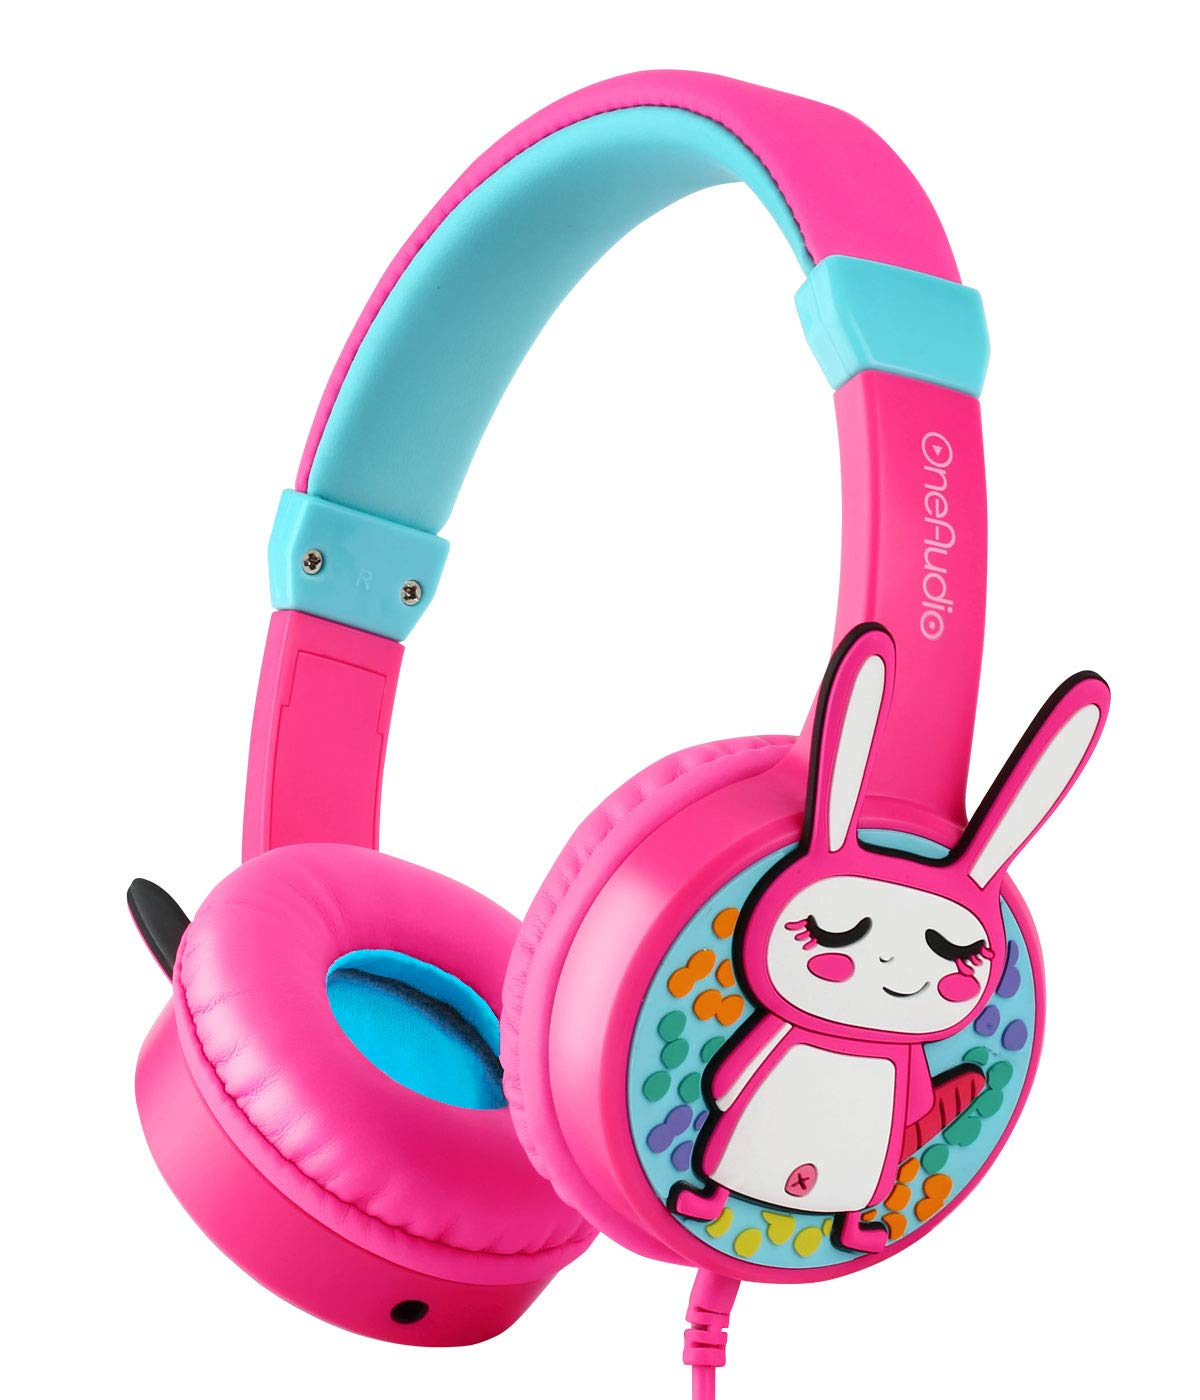 Kids Safe Headphones, OneAudio 85dB Volume Limited Headsets with 3.5mm Jack Lightweight & Durable, Wired On-Ear Headphones with Share Port Compatible for/Toddler/Girls/Kindle/Airplane/iPhone/(Rabbit)